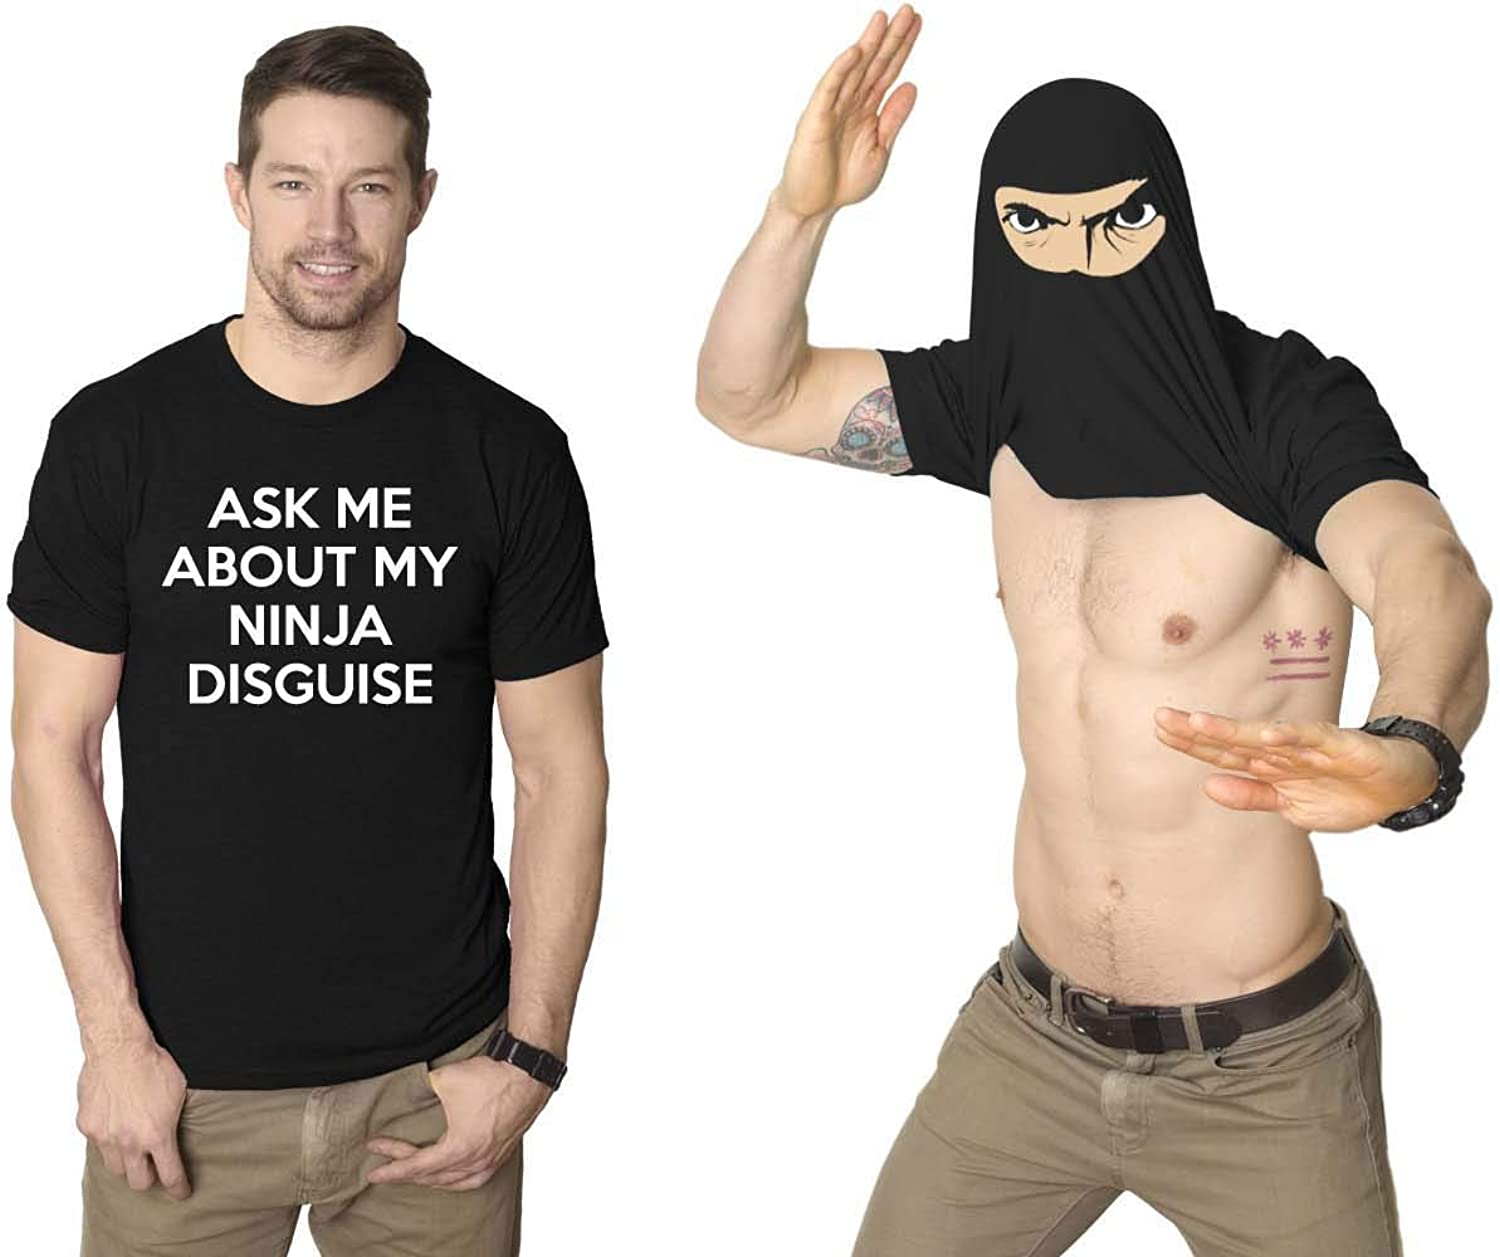 Mens Ask Me About My Ninja Disguise Flip T shirt Funny Costume Graphic Humor Tee